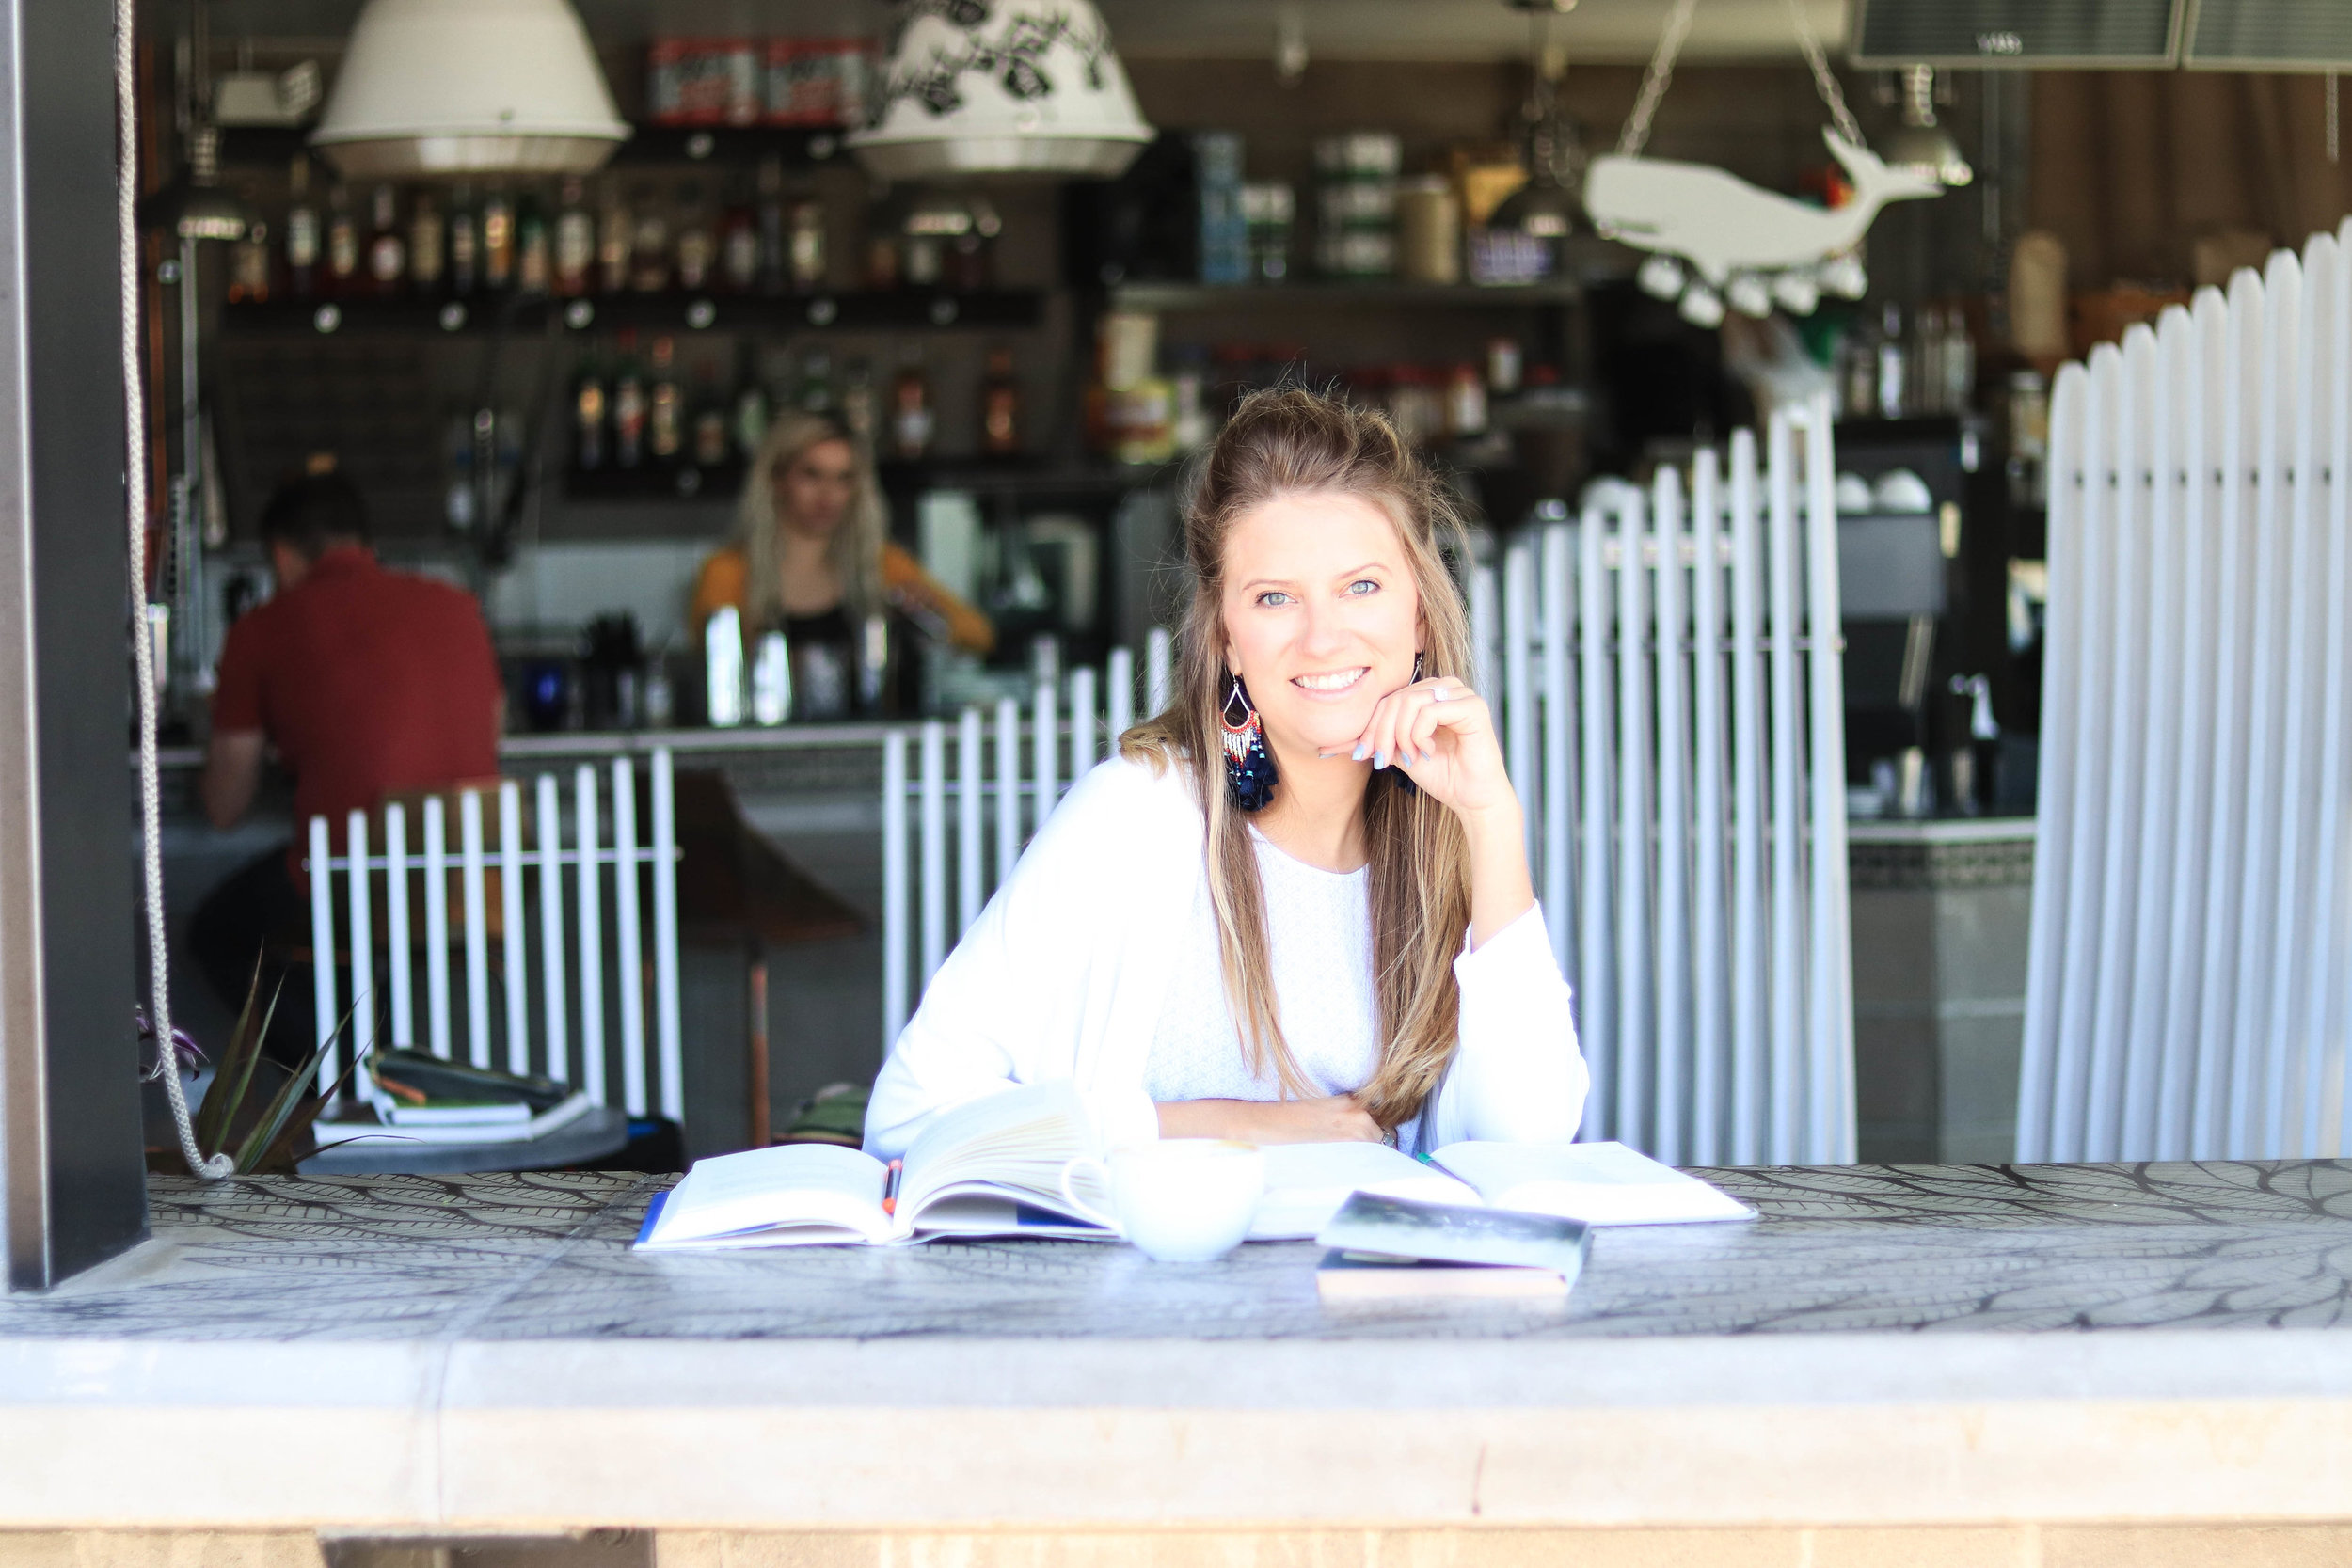 Hendo Co   Chelsea Henderson     Services provided:   brand research and discovery, logo design with custom lettering, color palette and typography, custom illustration, business card design, stationery design, copywriting, strategy sessions